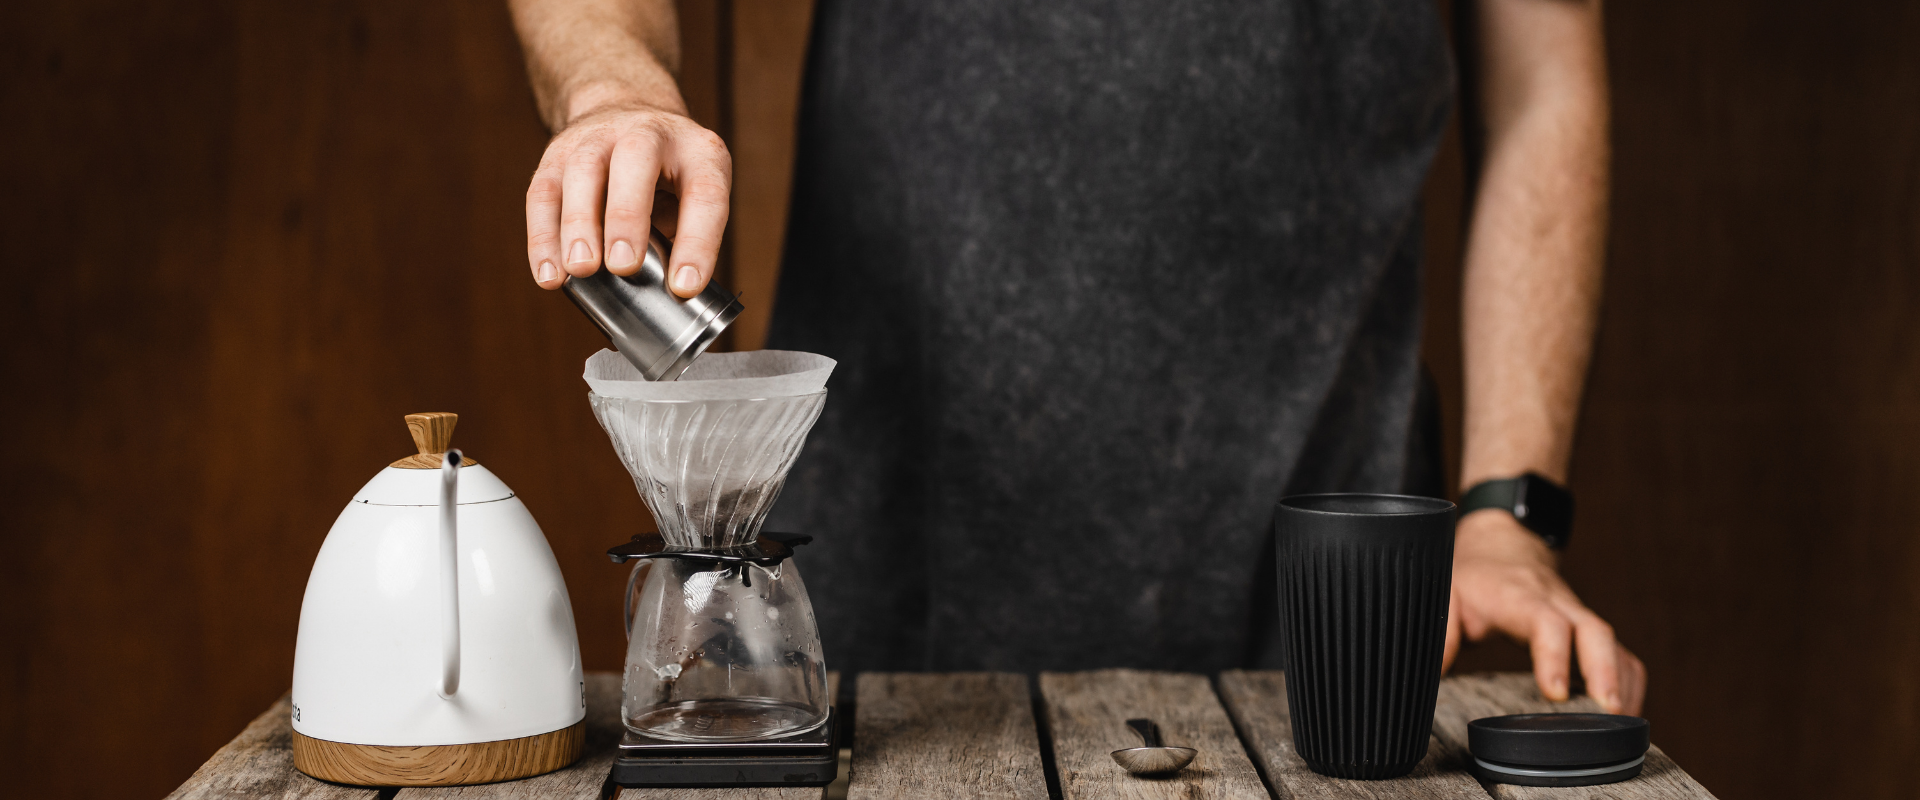 Person placing coffee grinds into v60 hario dripper